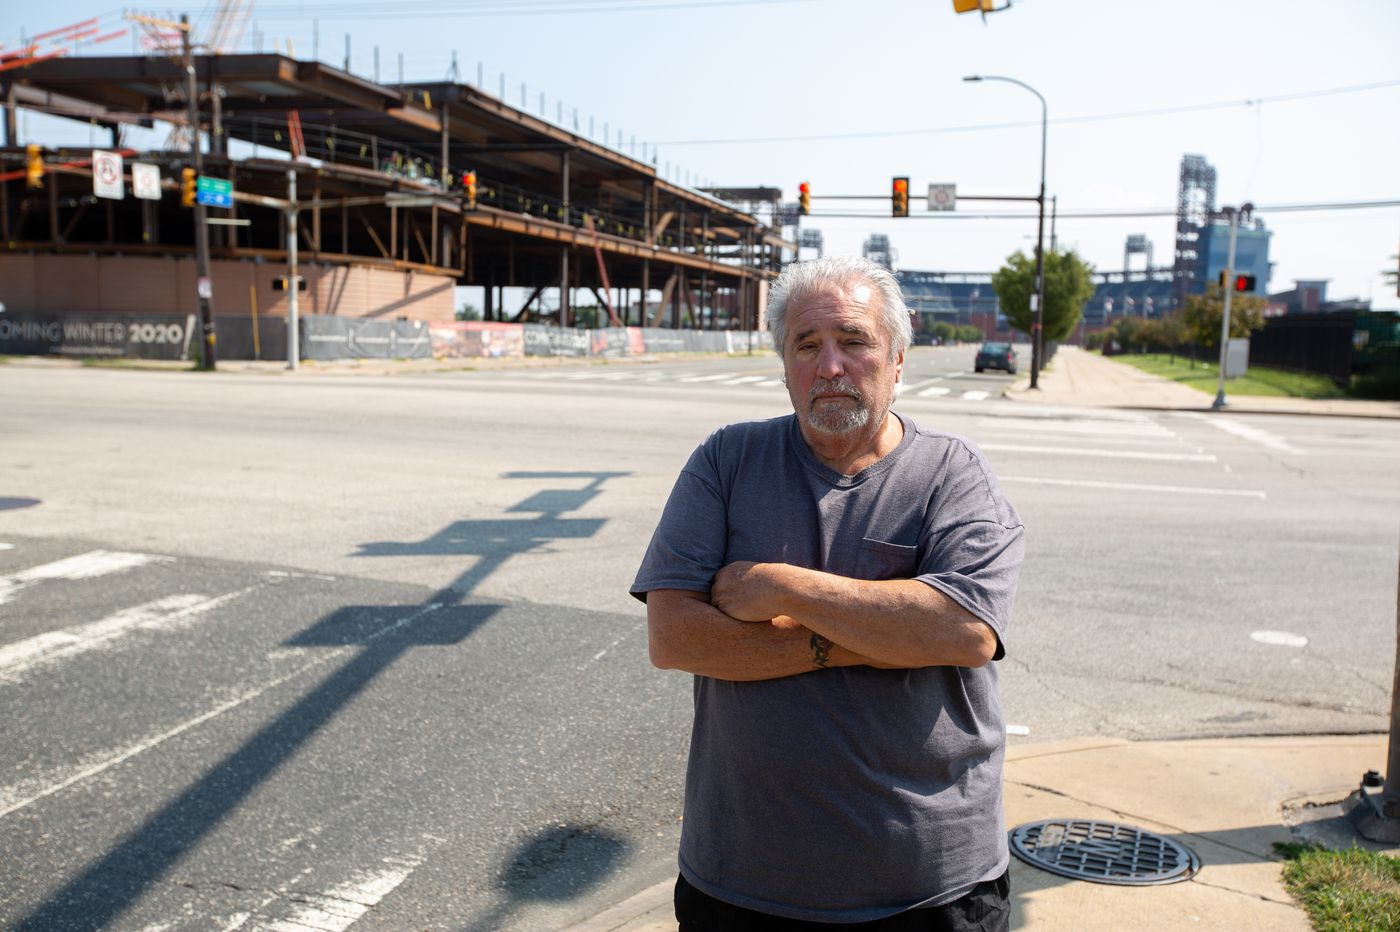 Casino promised a badly needed I-76 on-ramp in South Philly. Now it wants to do a U-turn.